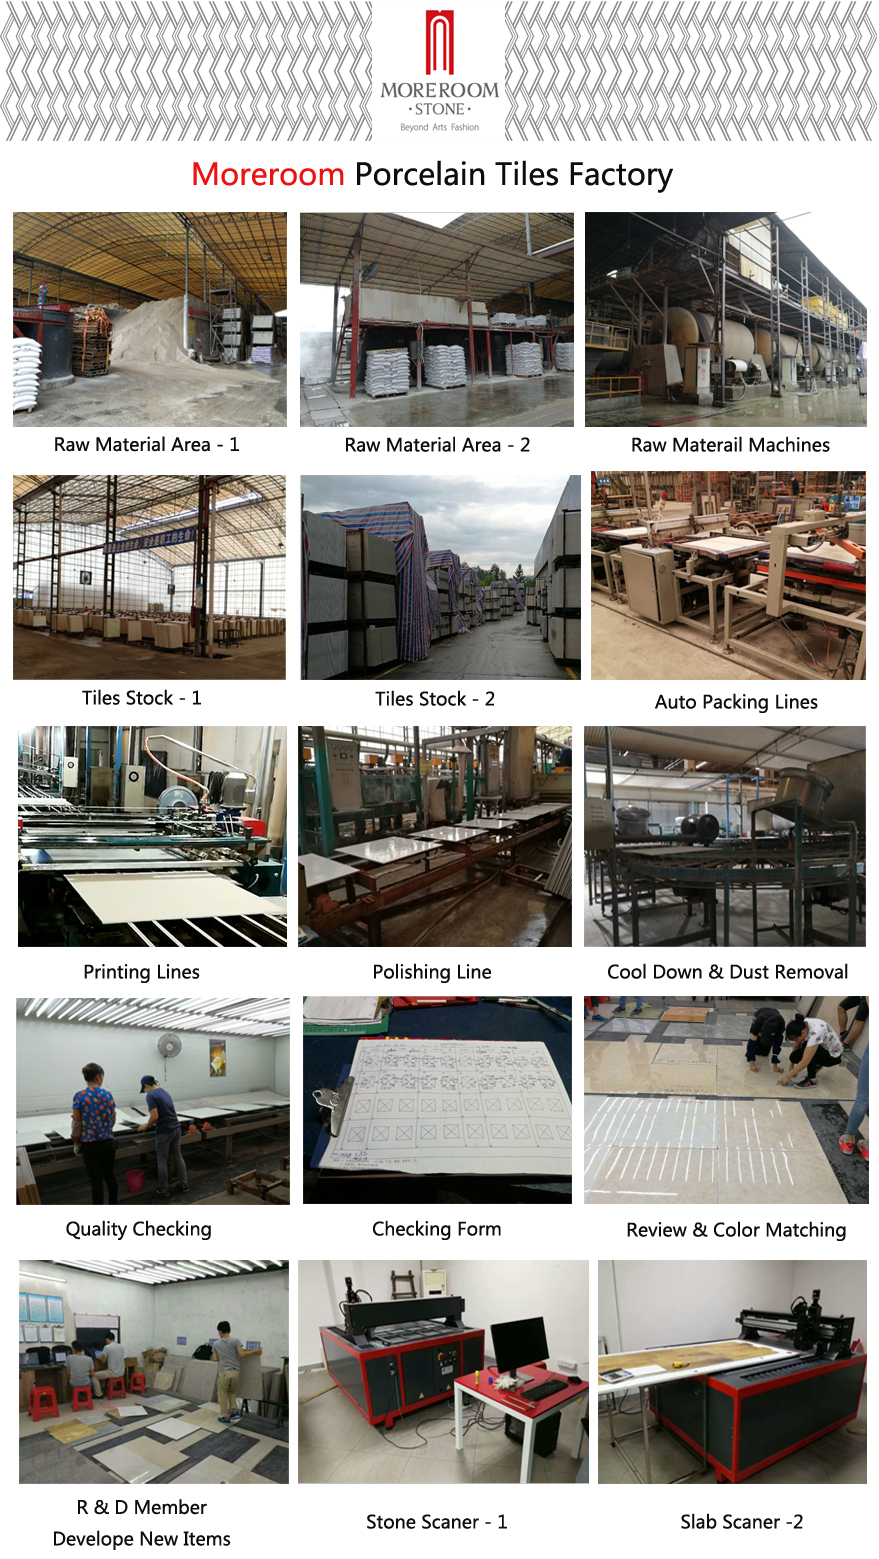 Porcelain Tiles Factory.jpg